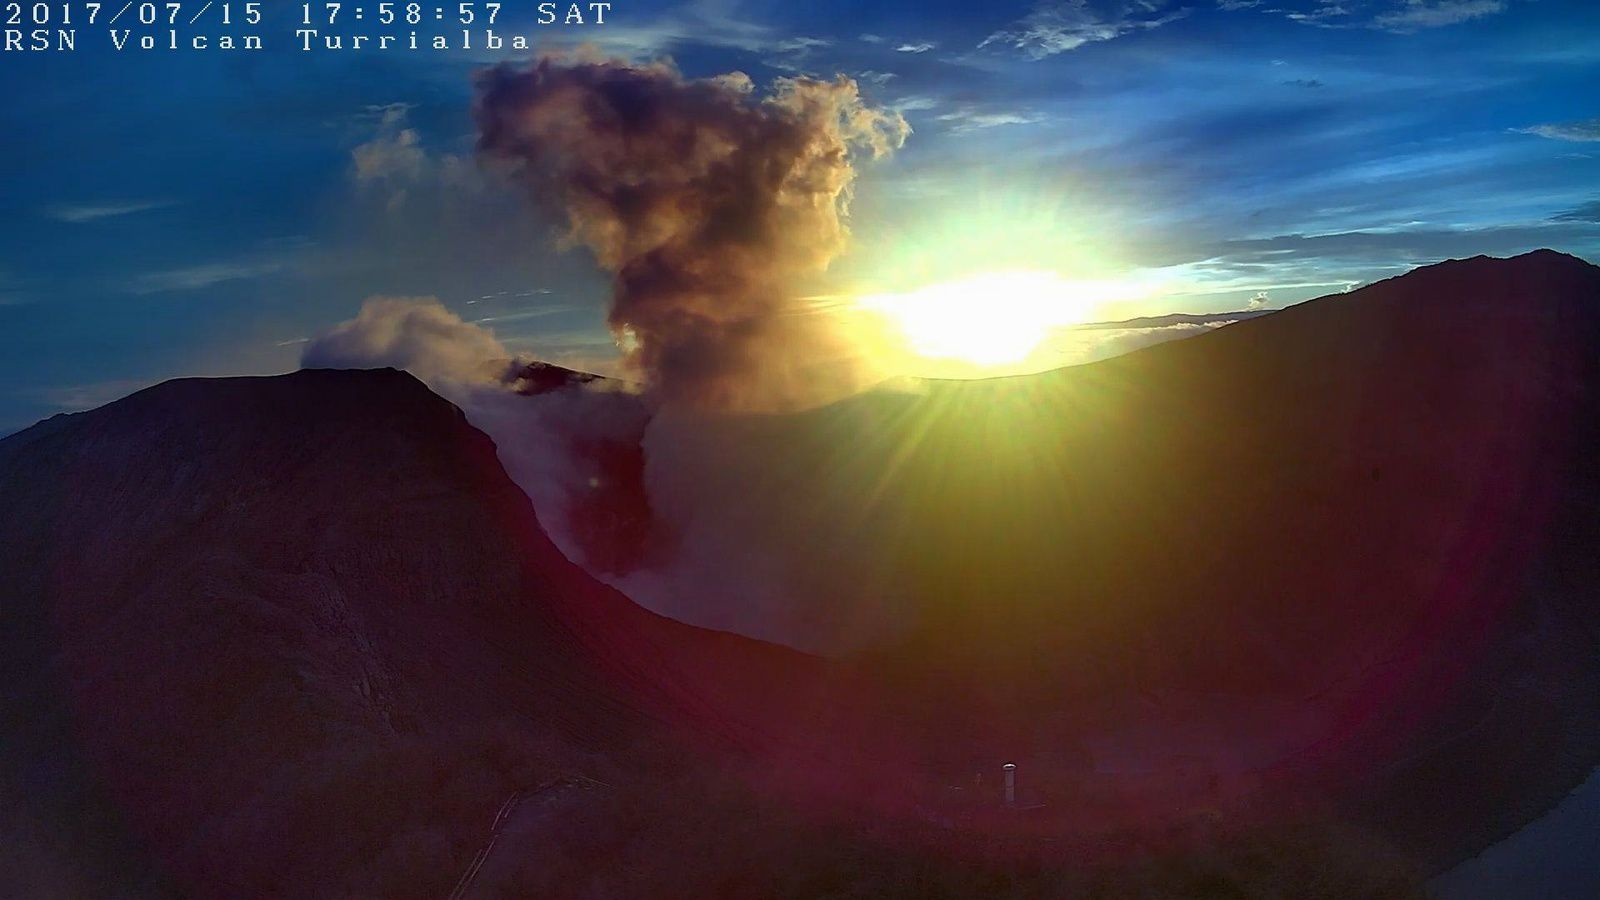 Turrialba - 15.07.2017 /  17h58 - webcam RSN